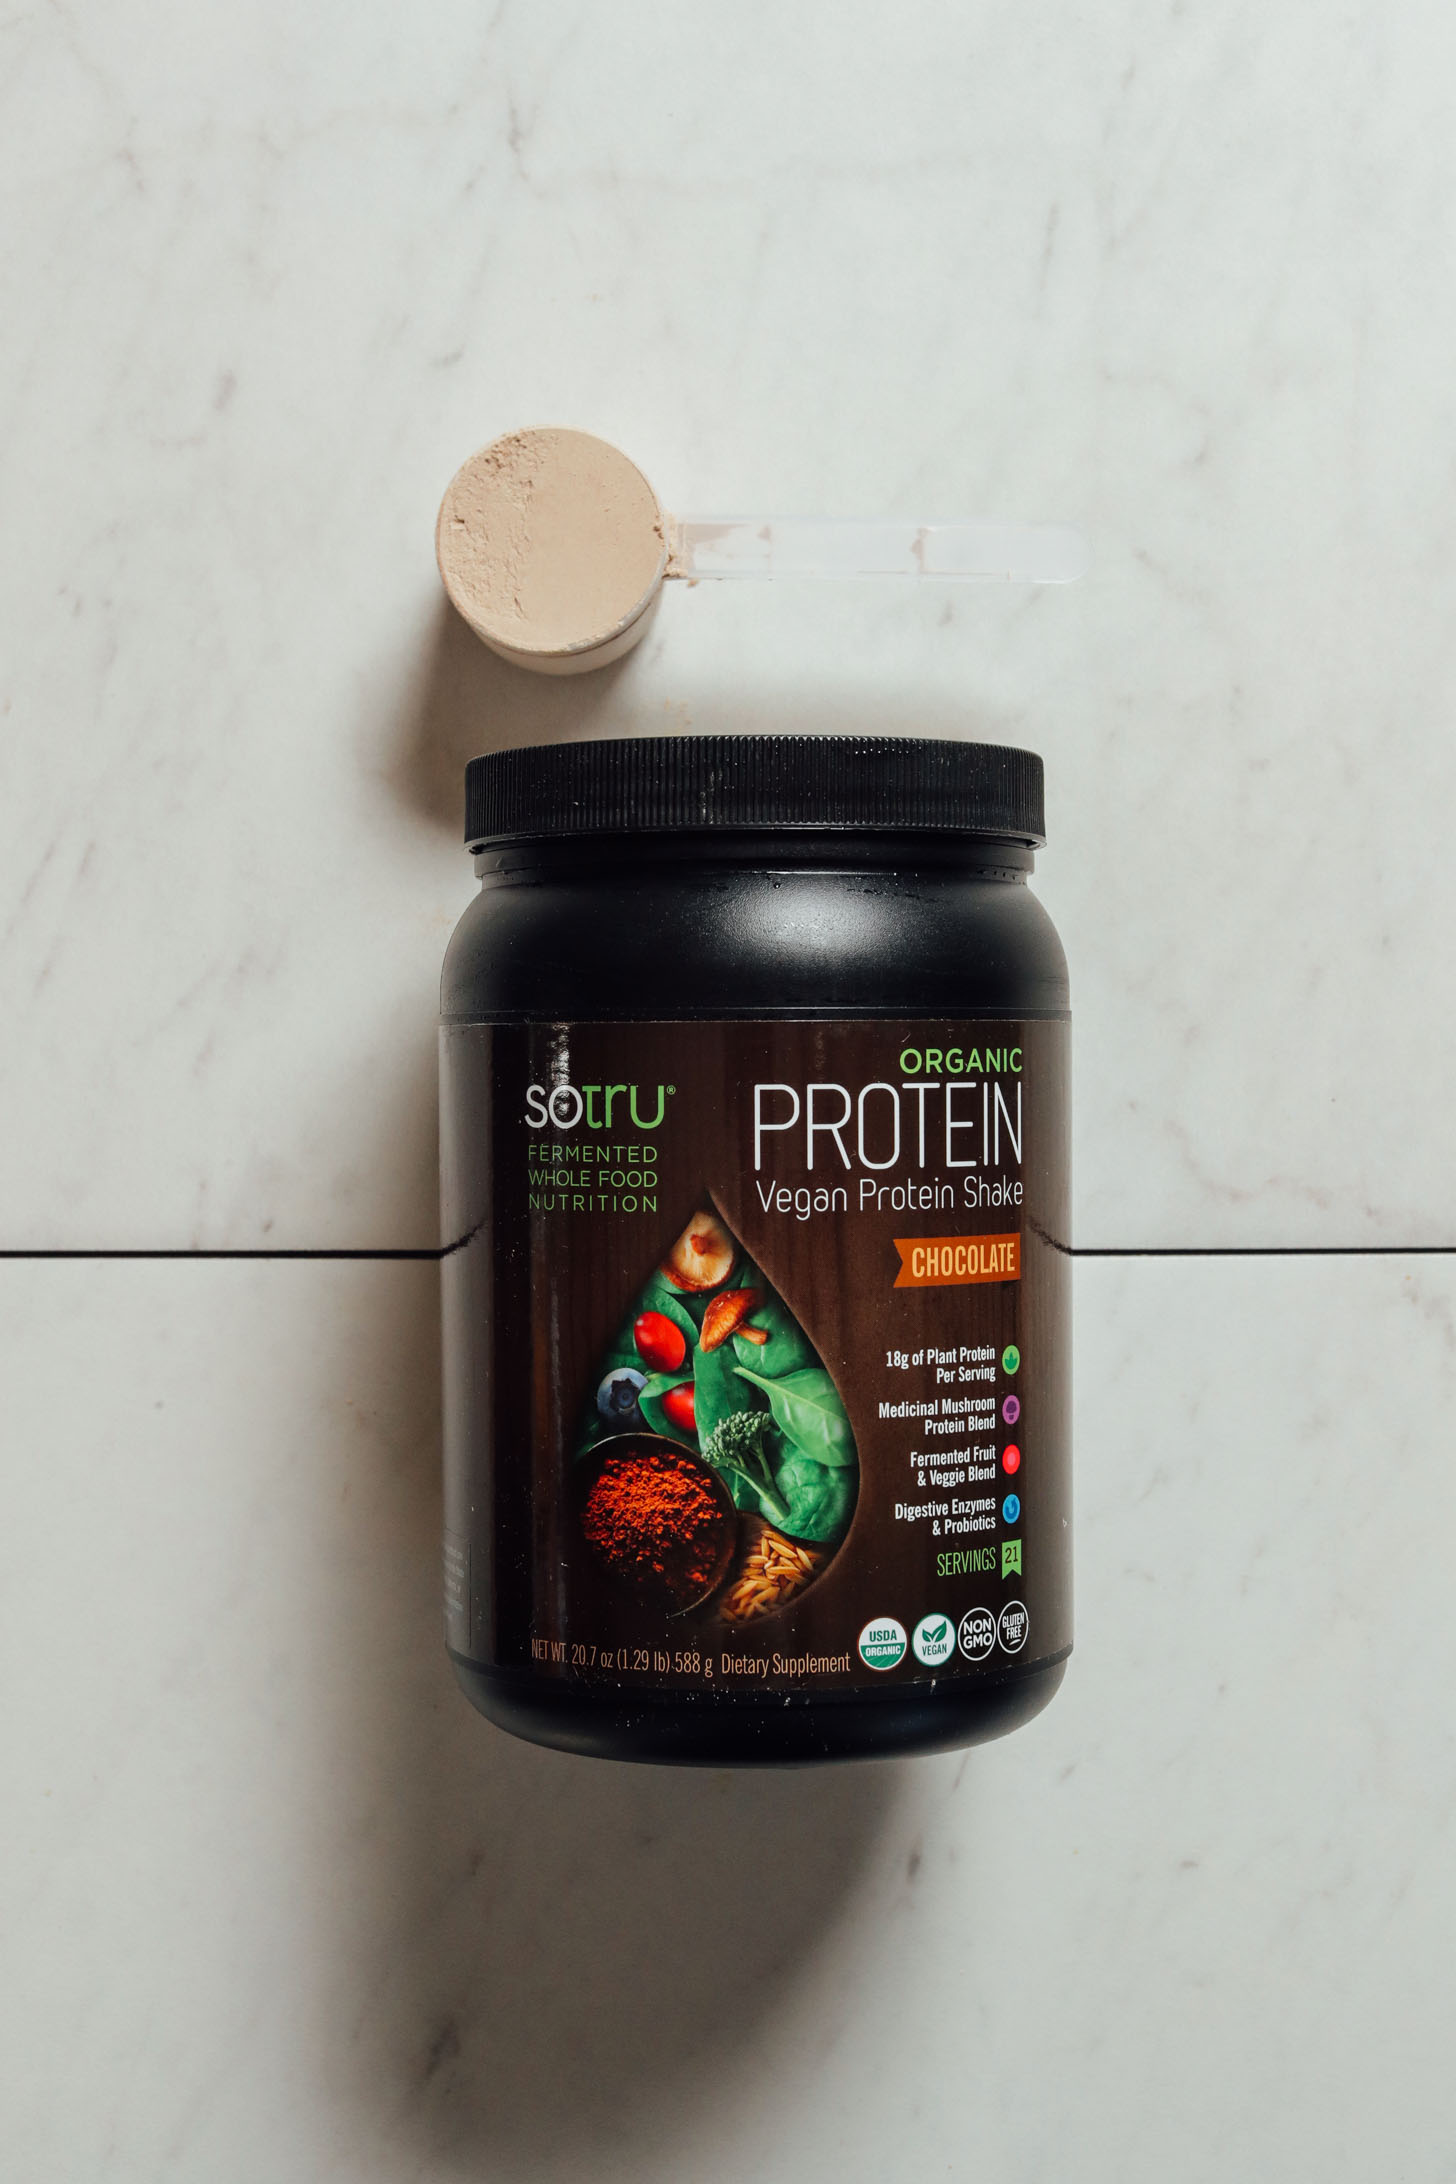 Tub of SoTru Vegan Protein for our chocolate protein powder review